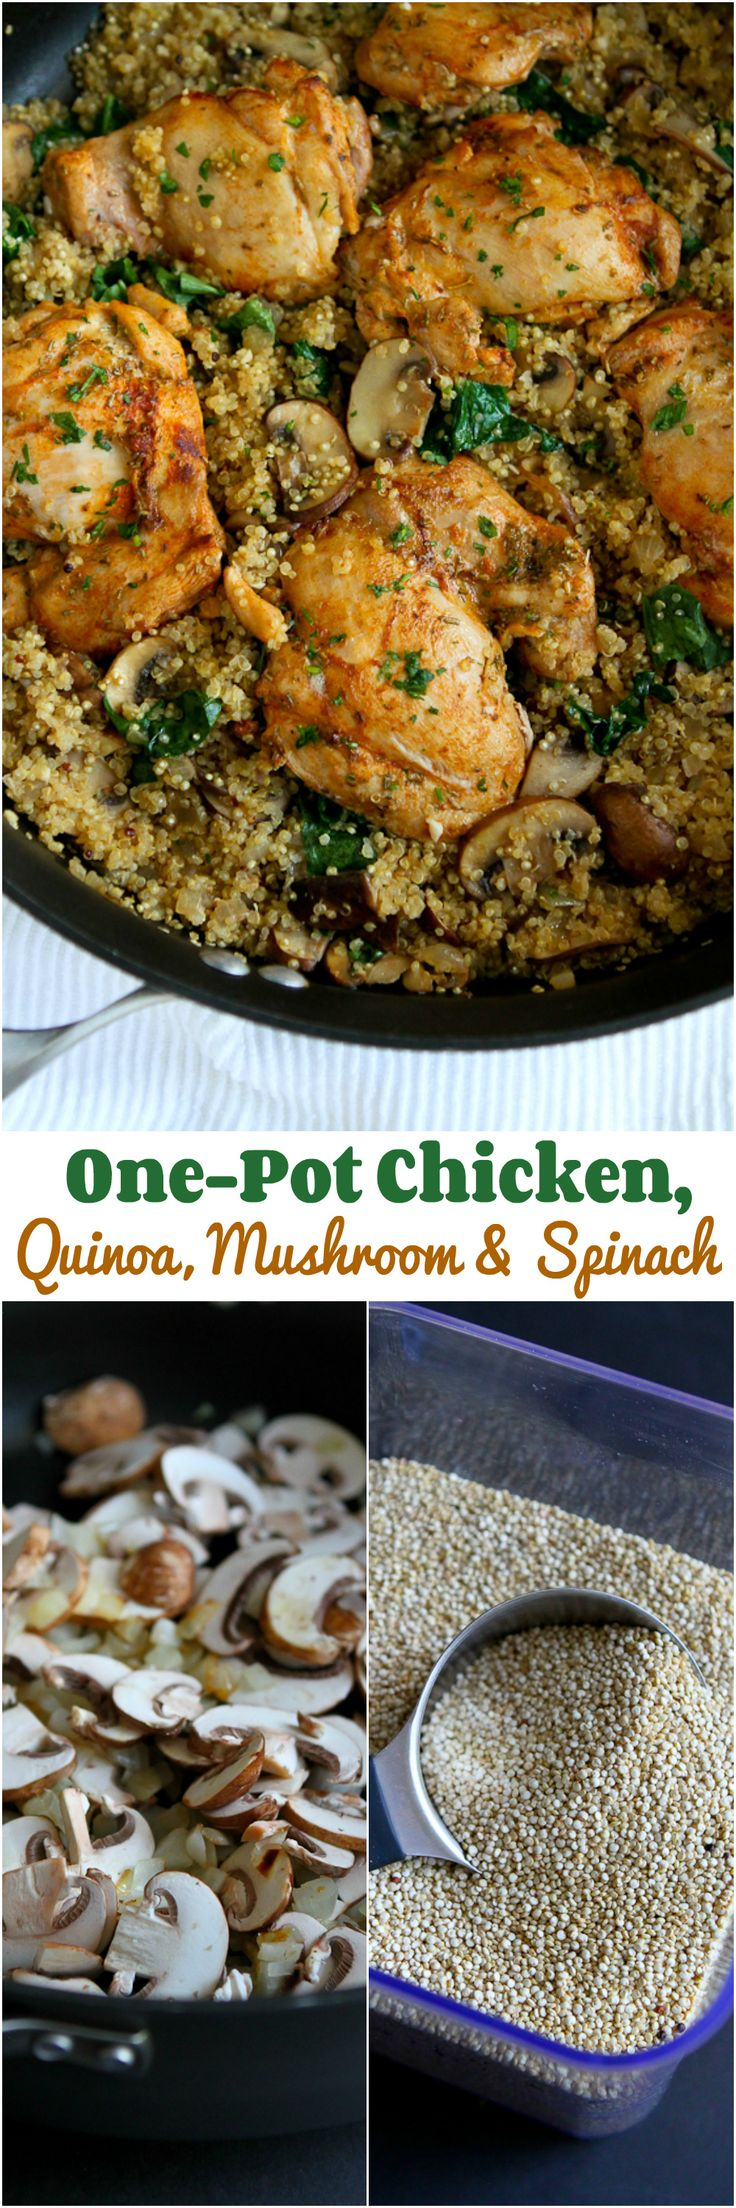 One-Pot Chicken, Quinoa, Mushrooms and Spinach recipe...Healthy dinner, quick clean-up! 256 calories and 6 Weight Watchers SmartPoints